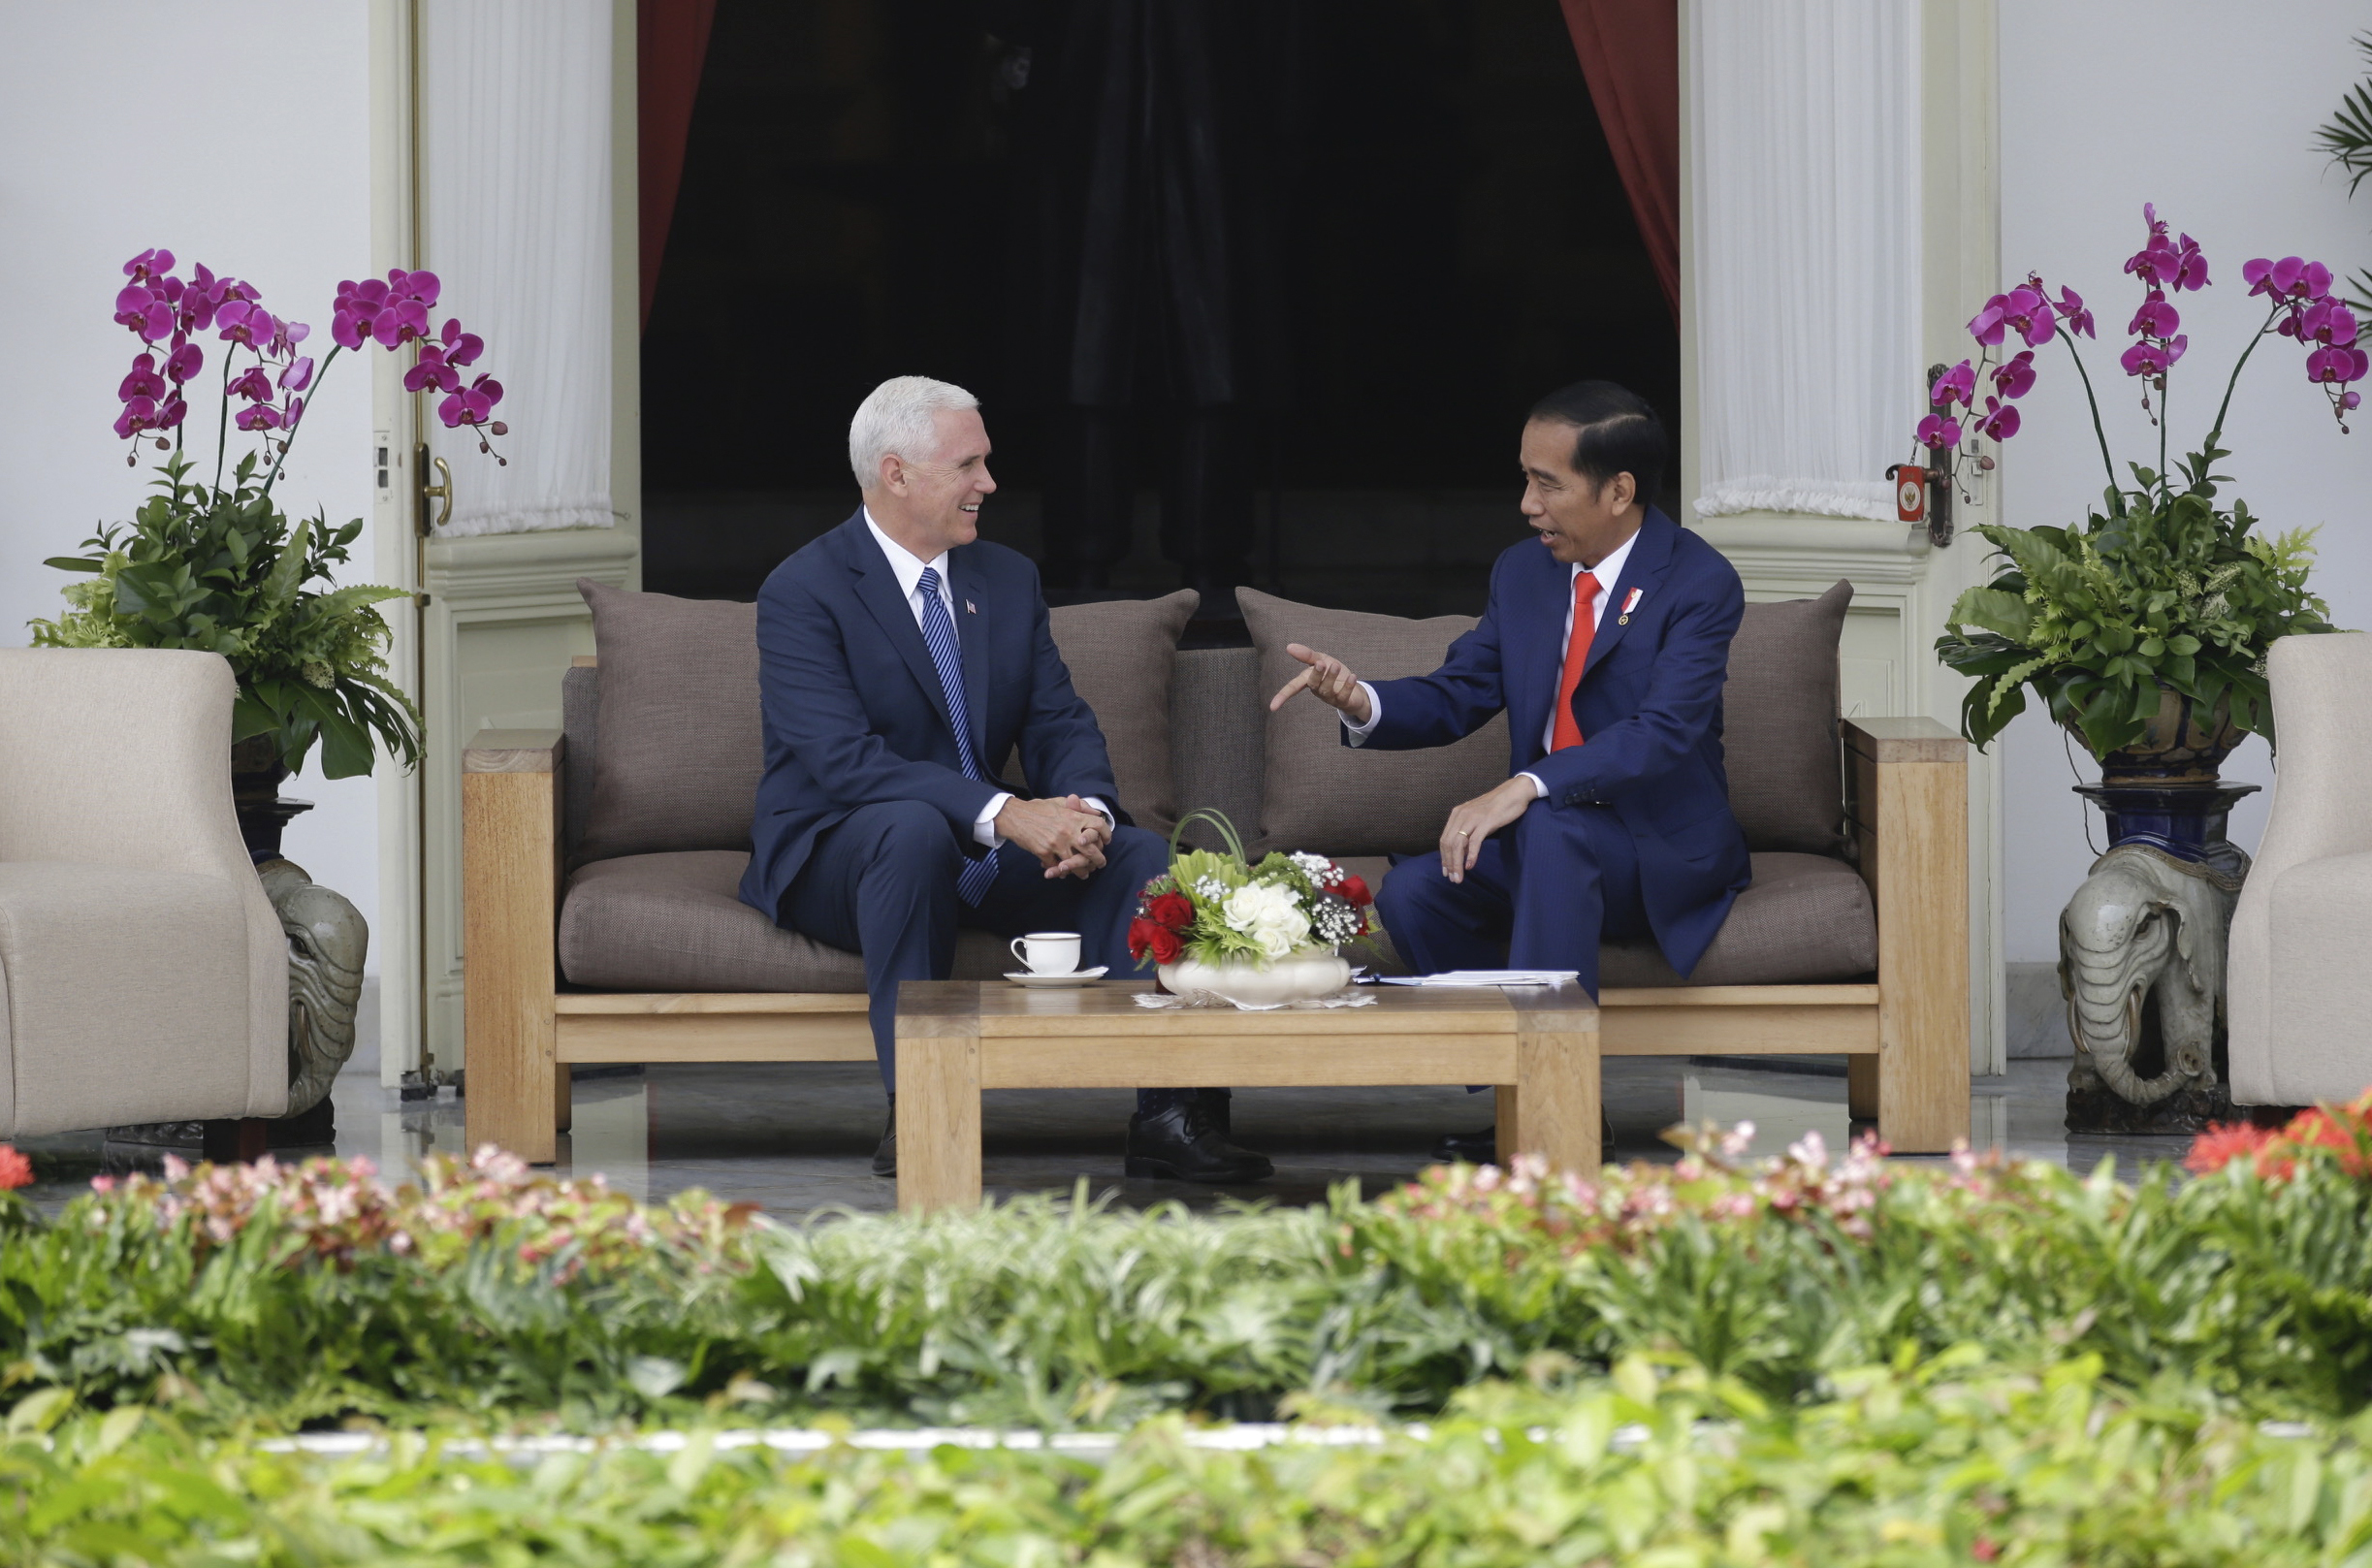 Indonesia US Pence U.S. Vice President Mike Pence, left, confers with Indonesian President Joko Widodo during their meeting at Merdeka Palace in Jakarta, Indonesia, Thursday, April 20, 2017. Pence is currently on a 10-day trip in Asia. (AP Photo/Dita Alangkara, Pool)